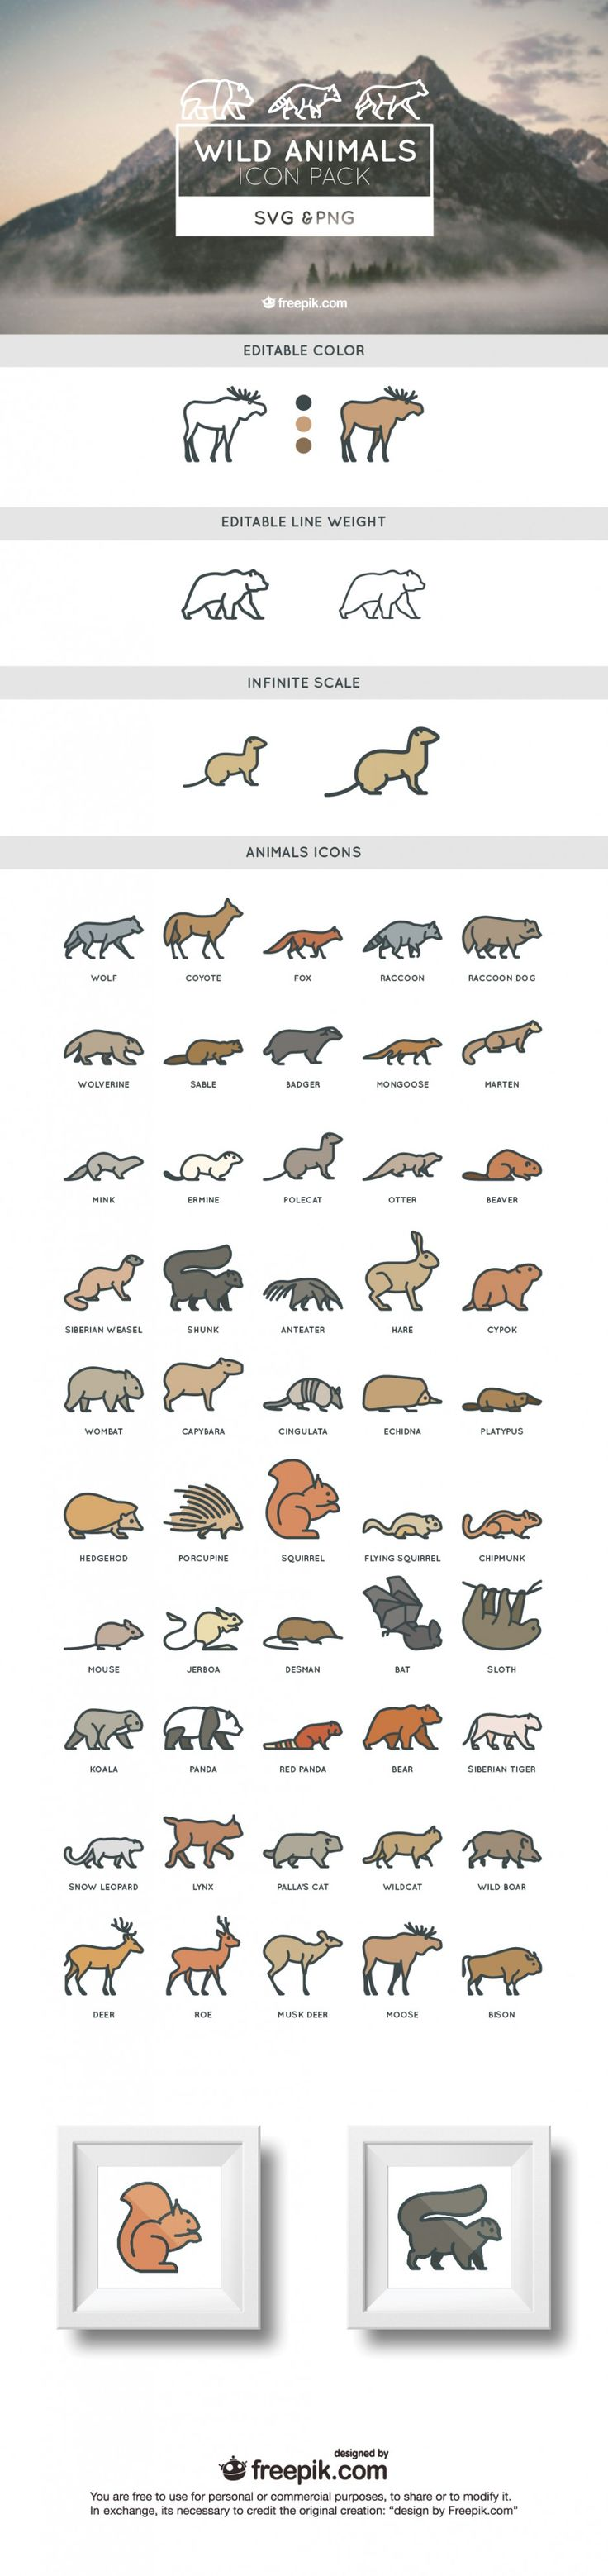 best animales images by nata on pinterest